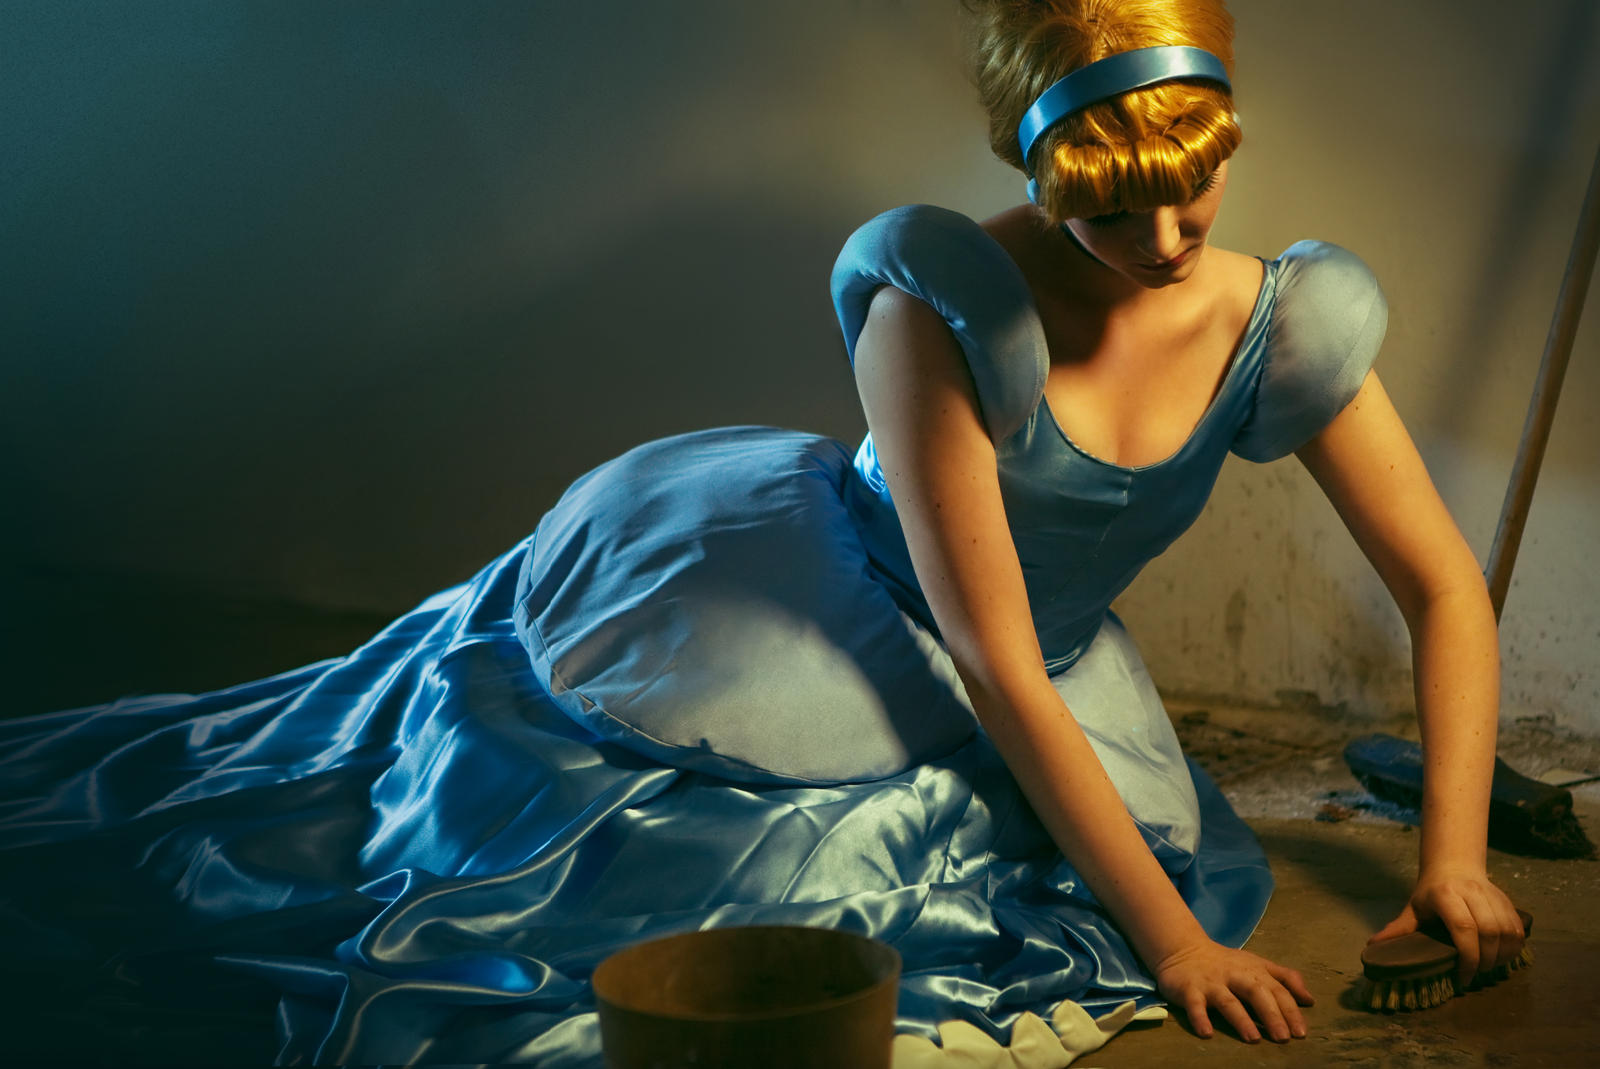 Cinderella Dreaming 2 by simplearts